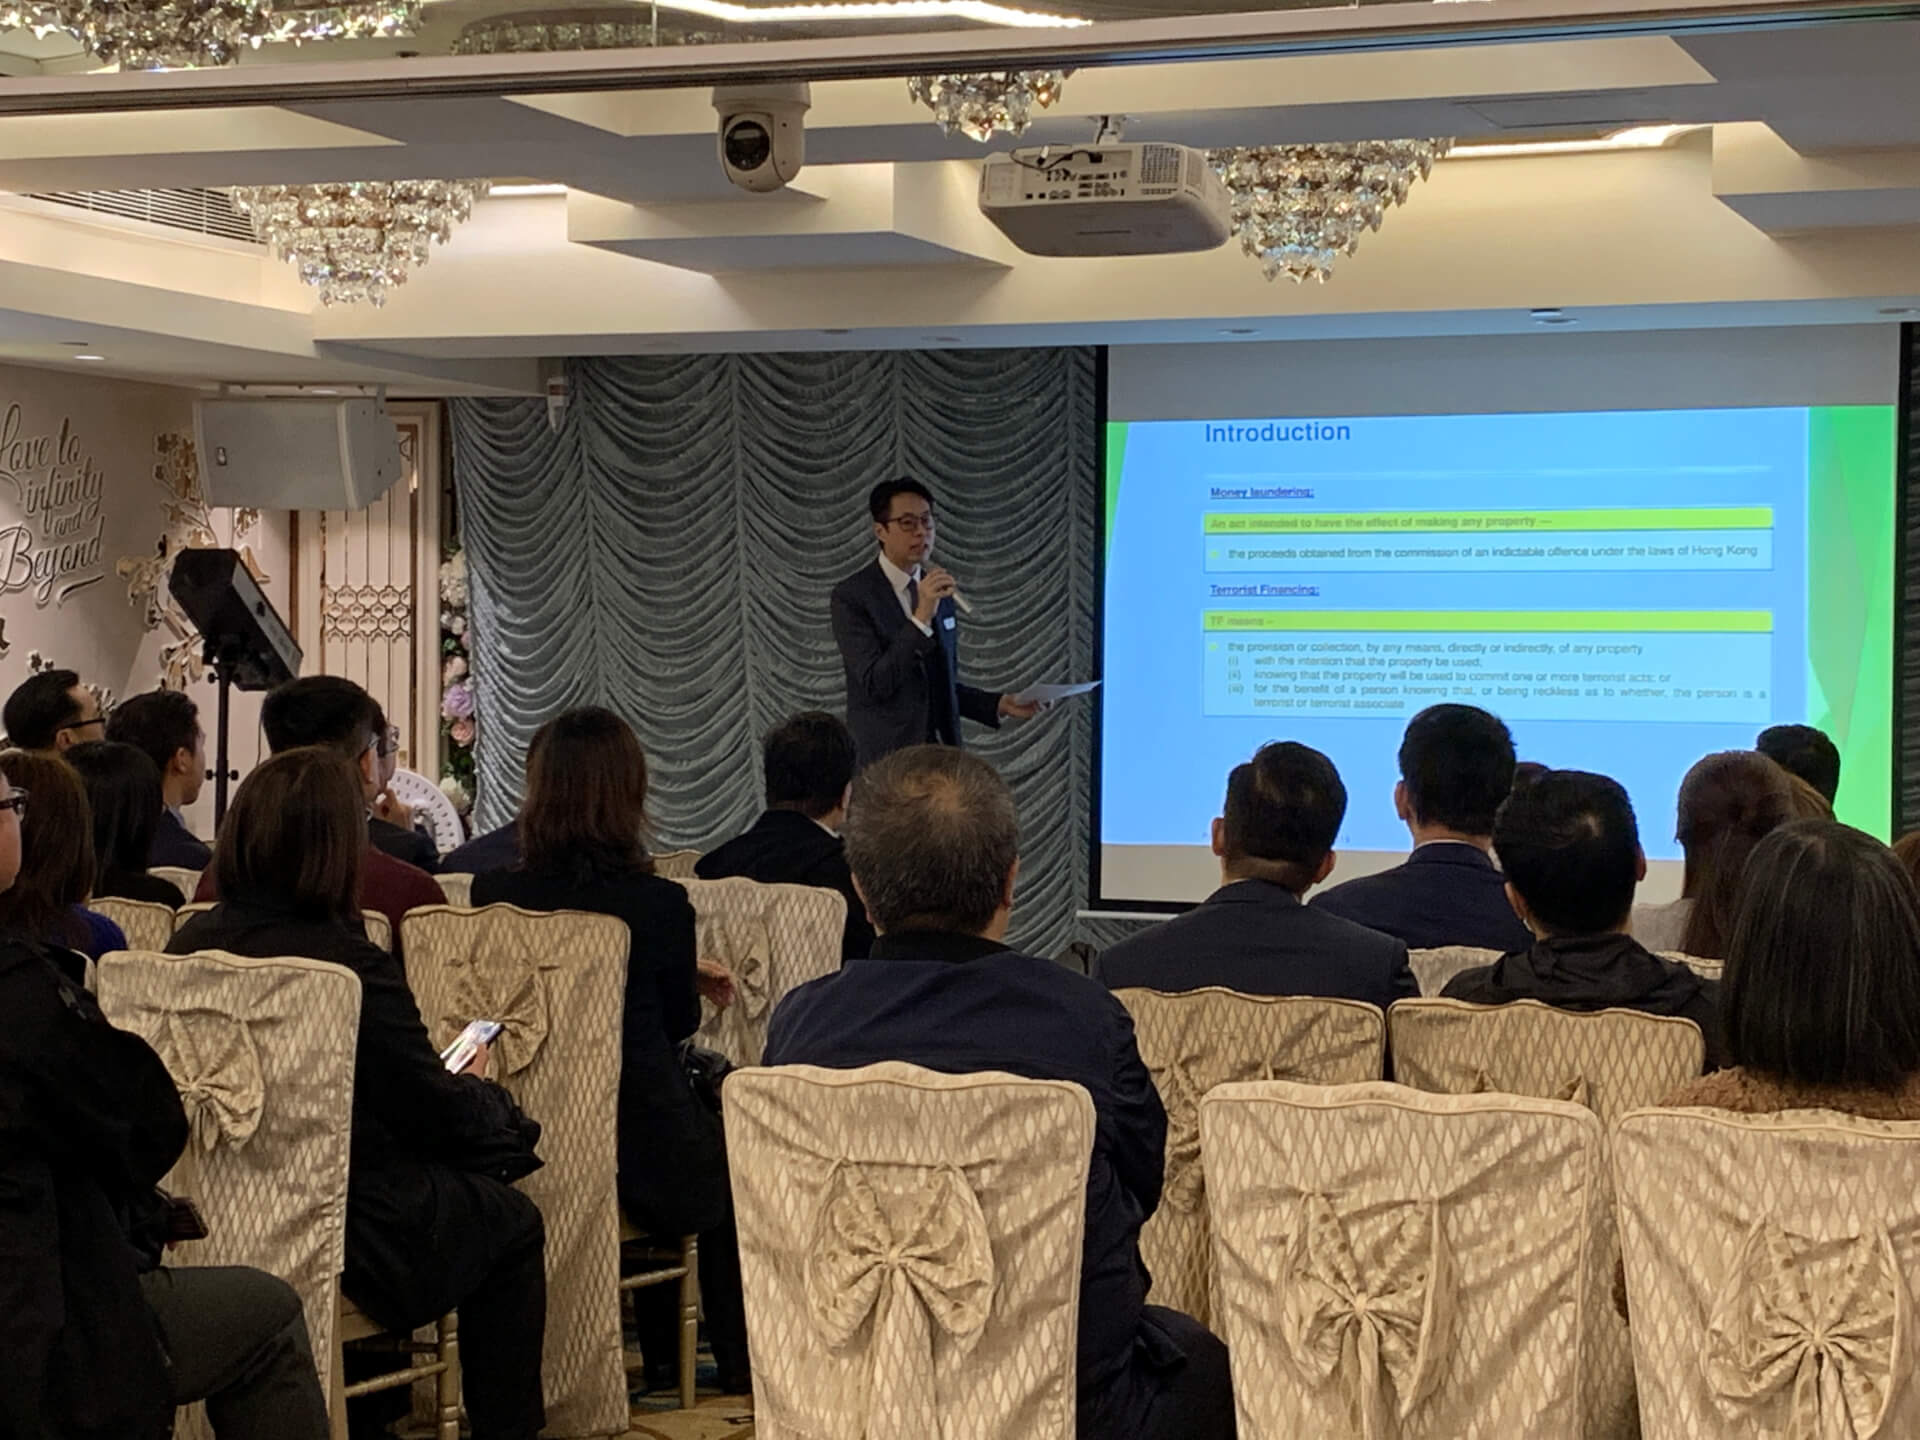 HKGCPF held a seminar on AML and CFT and the annual spring festival